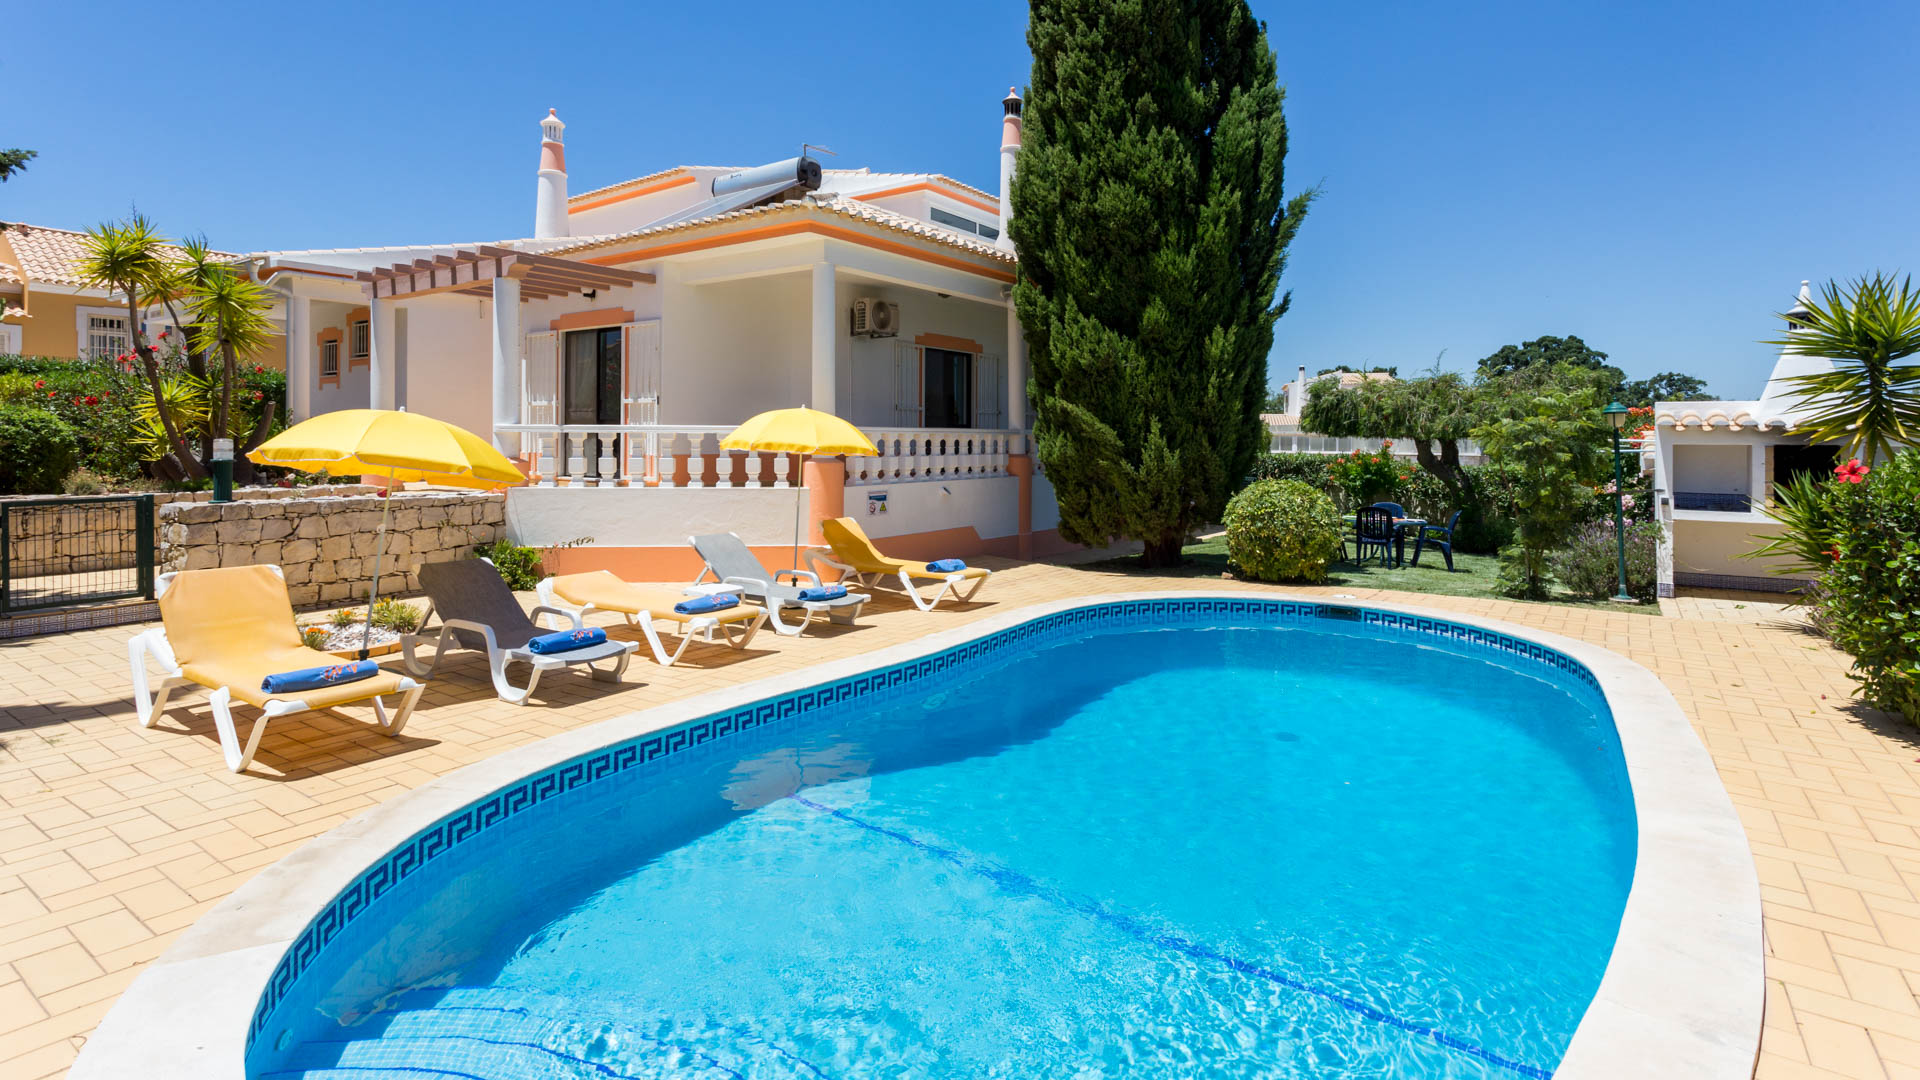 Villa albufeira ls418, Wonderful and cheerful villa in Albufeira, on the Algarve, Portugal  with private pool for 6 persons...